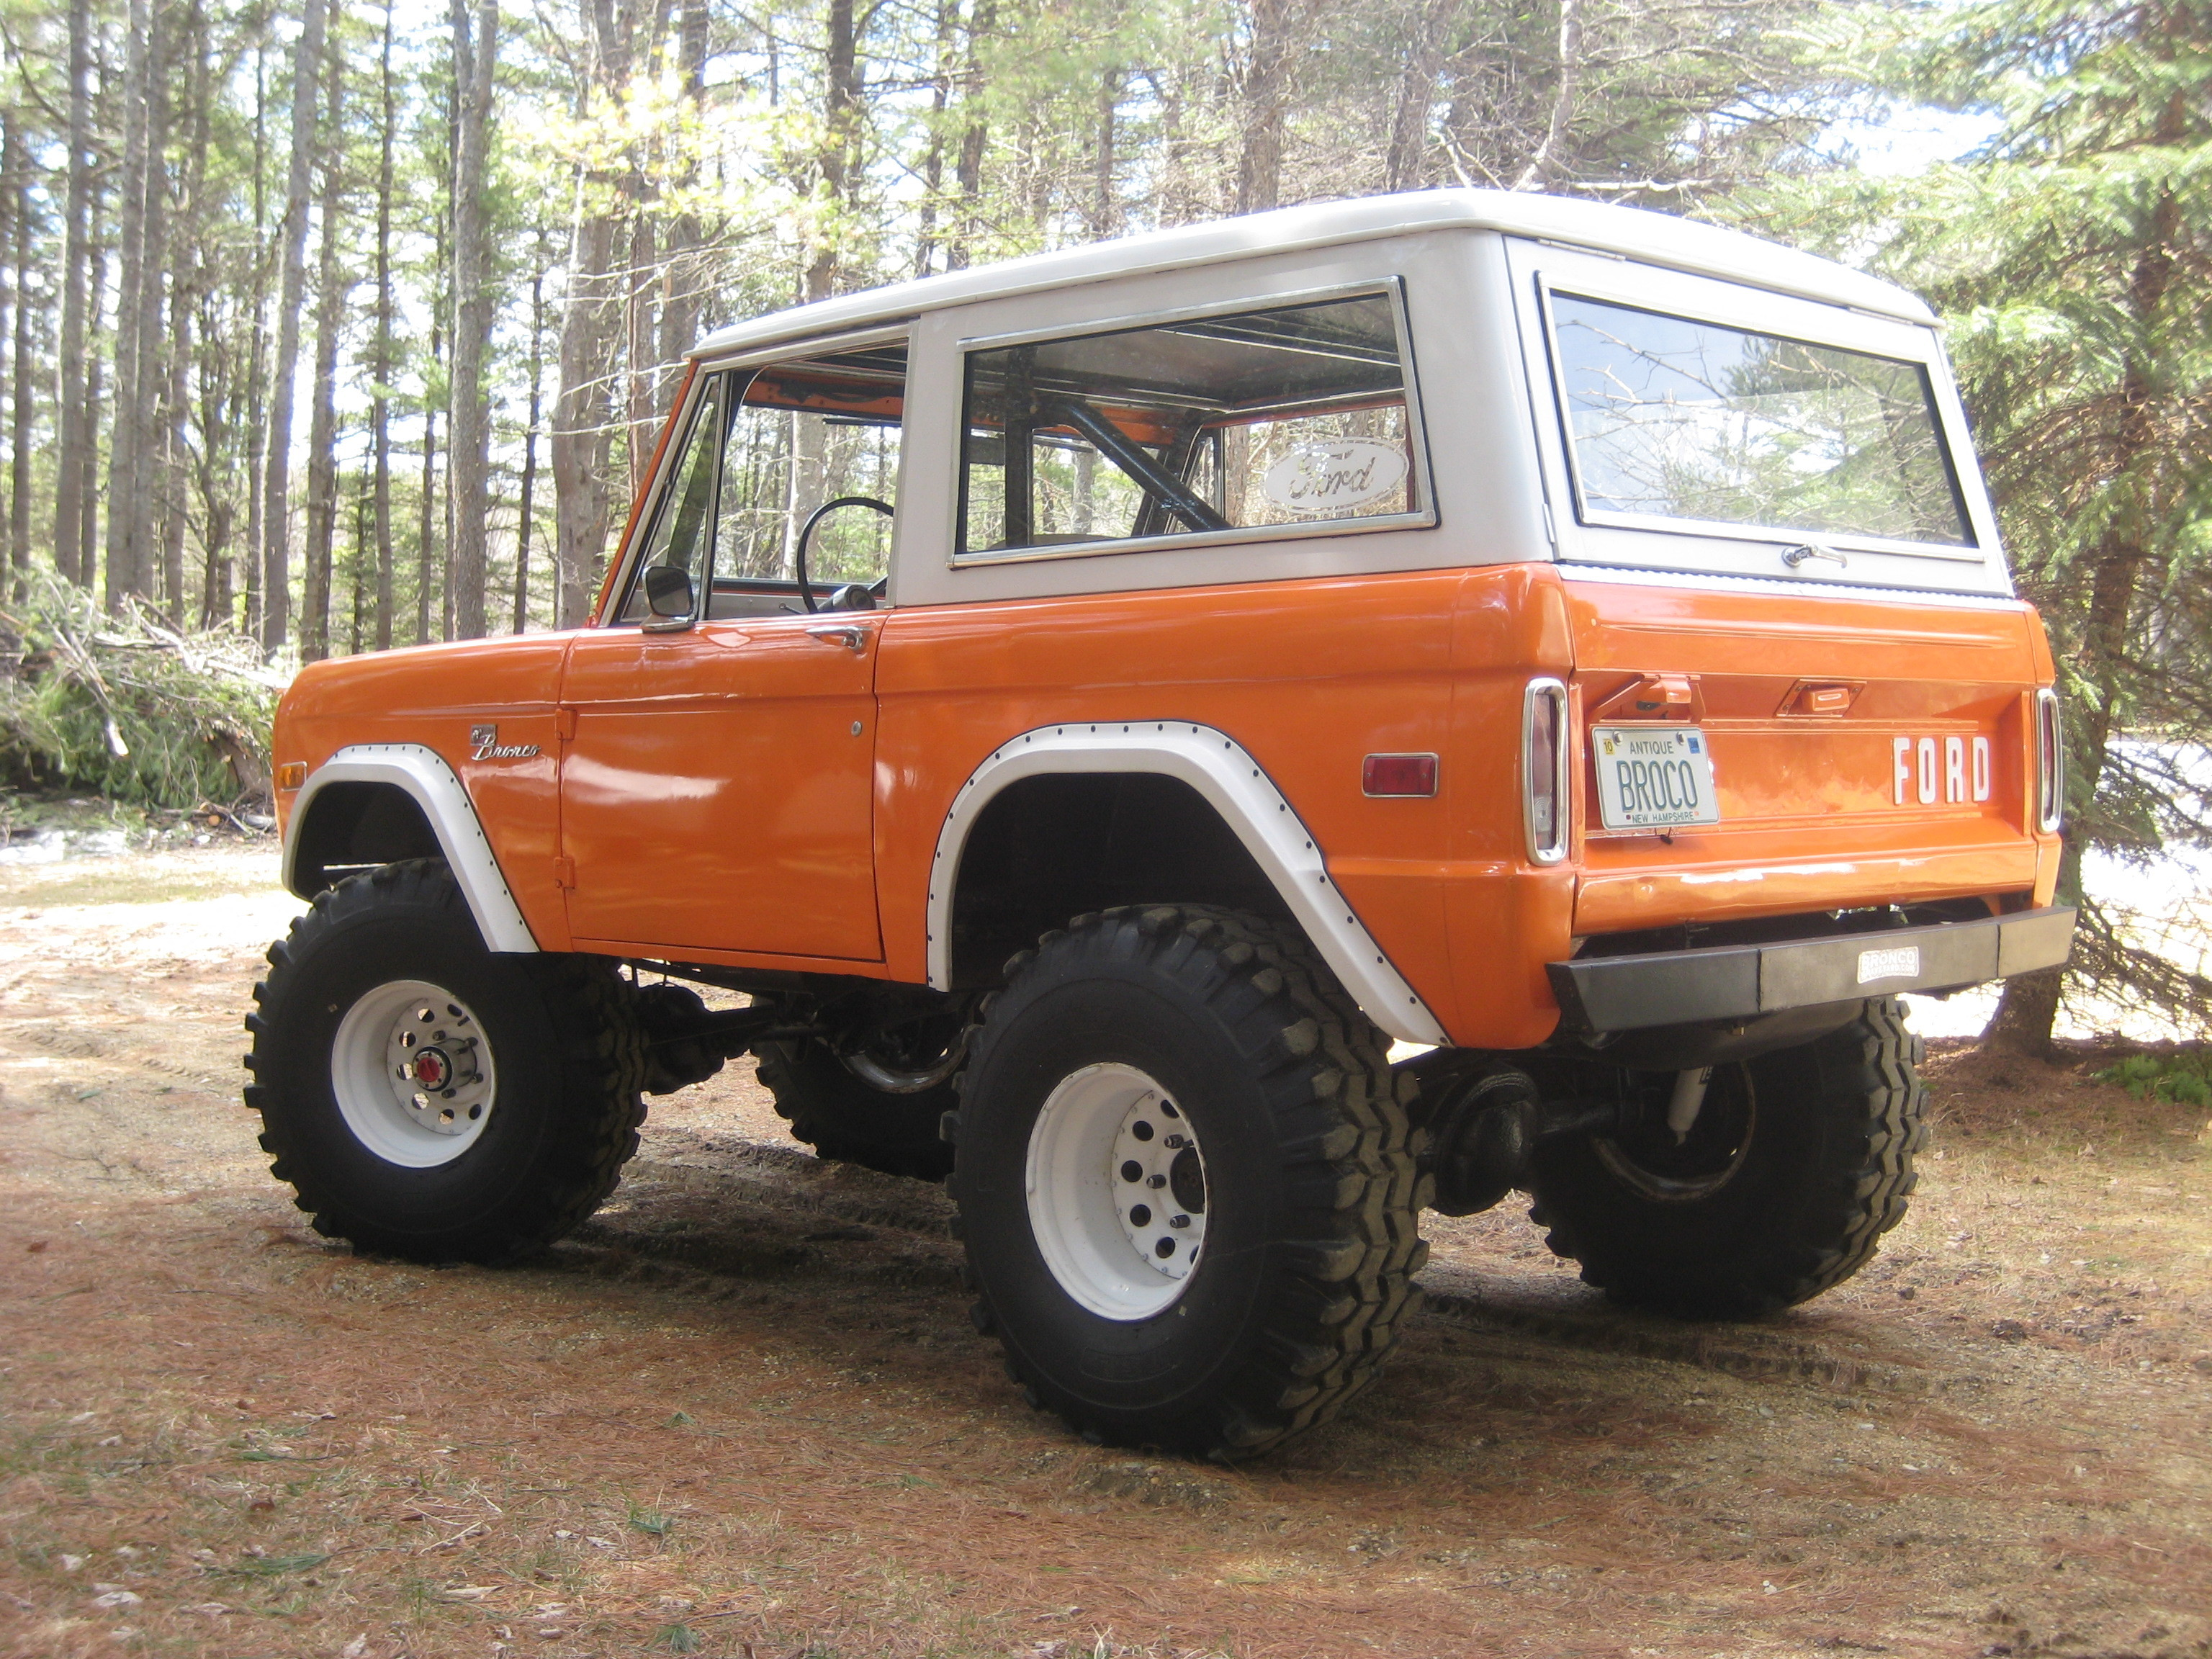 Ford Bronco Tires >> 71Broco302HO 1971 Ford Bronco Specs, Photos, Modification Info at CarDomain